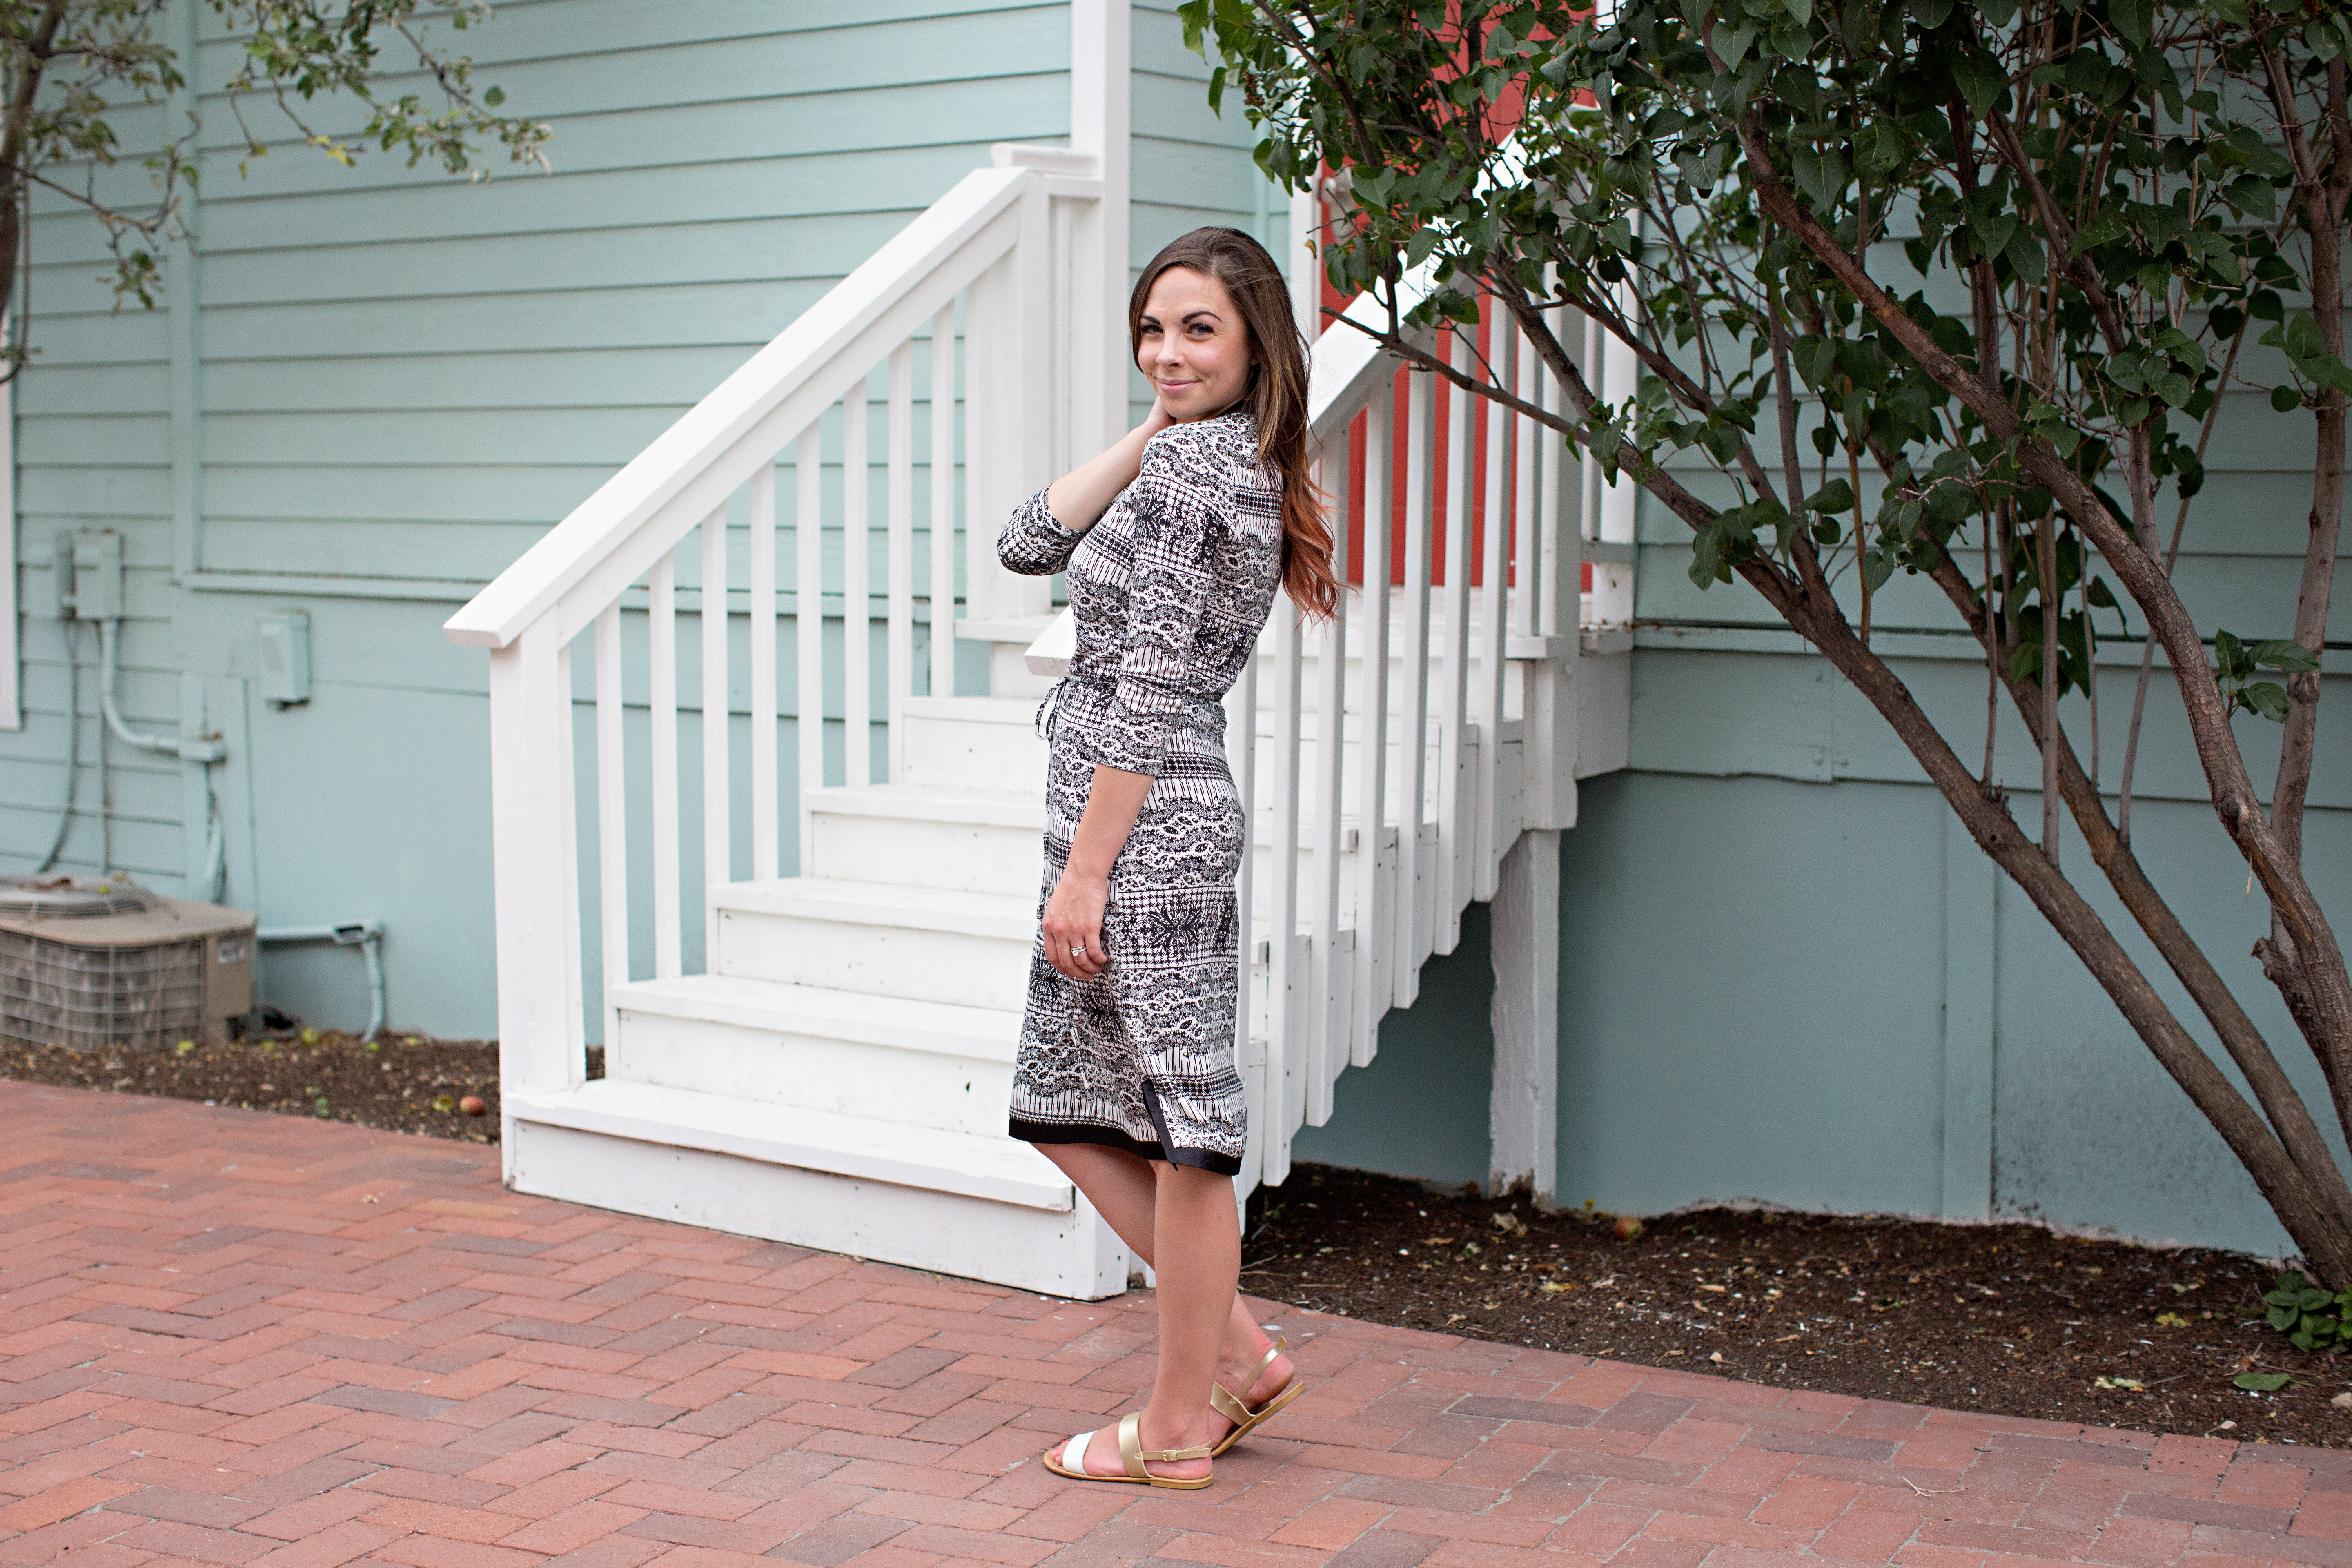 Uncategorized Modestly Styled picket fence a modest playdress for everyday wear goddess black and white jersey knit styled by fashion blogger lovely